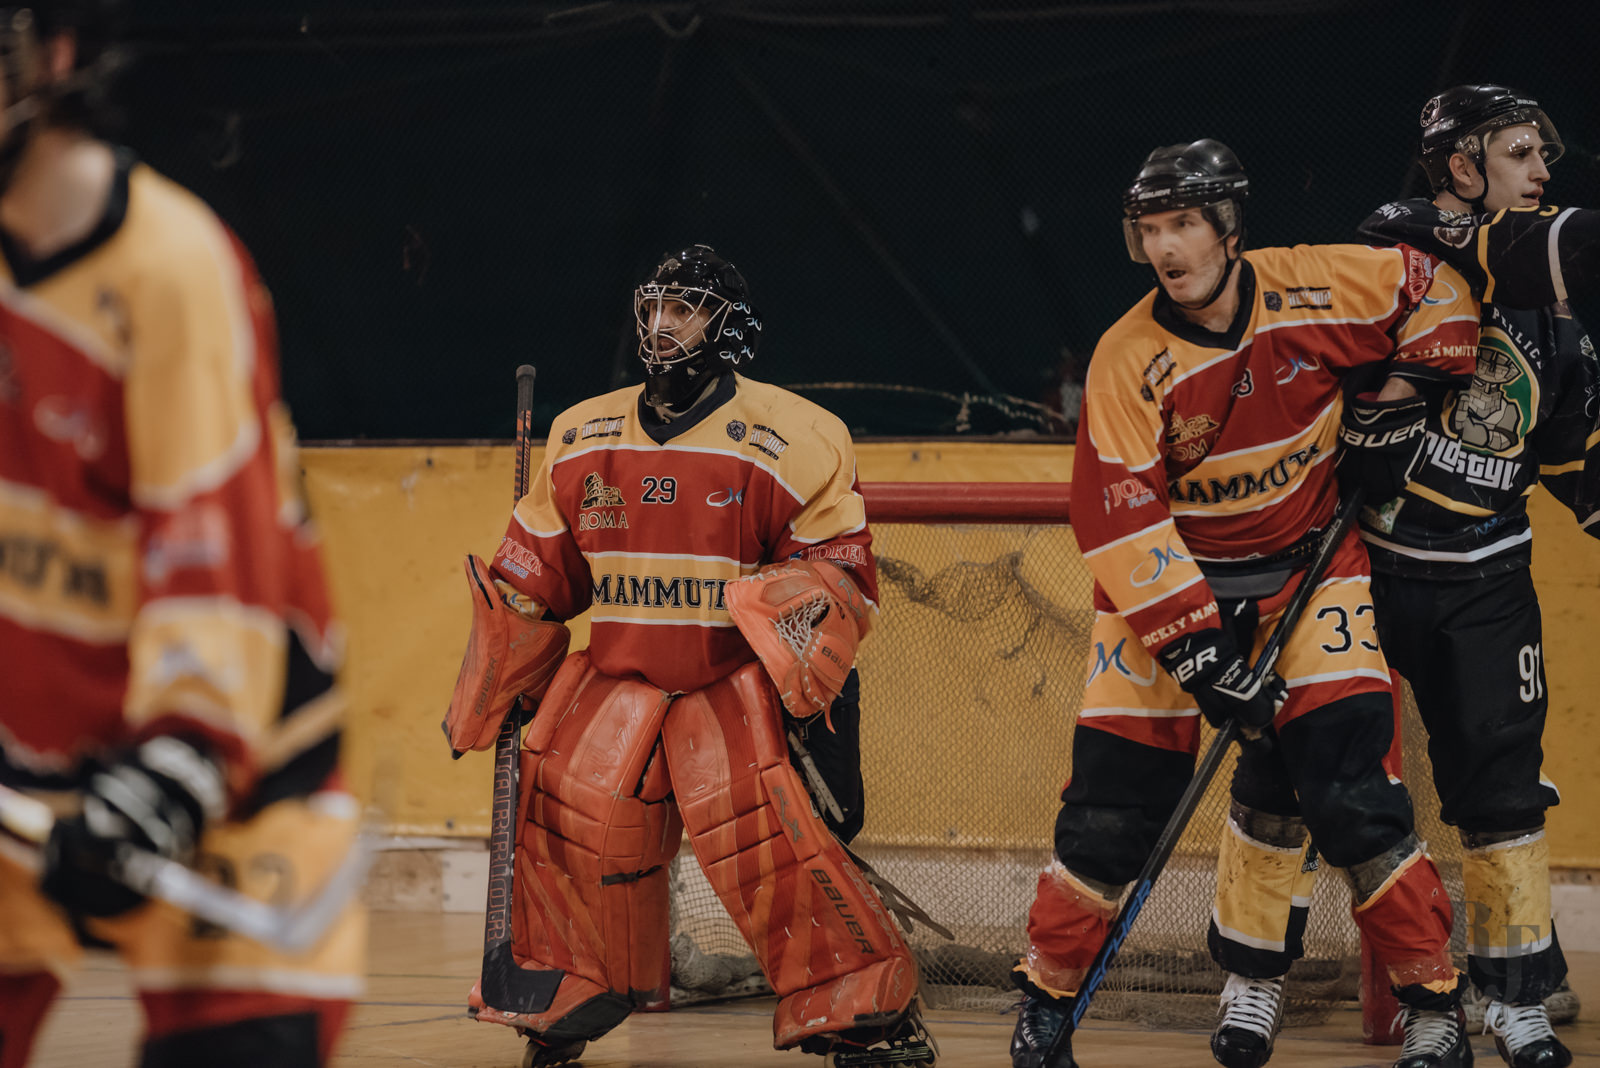 Mammuth Roma Hockey Team, pattinaggio e hockey a roma, mammuth hockey, hockey in linea a roma, rita foldi photography, corso di pattinaggio e hockey a roma, campionato serie B, inline hockey